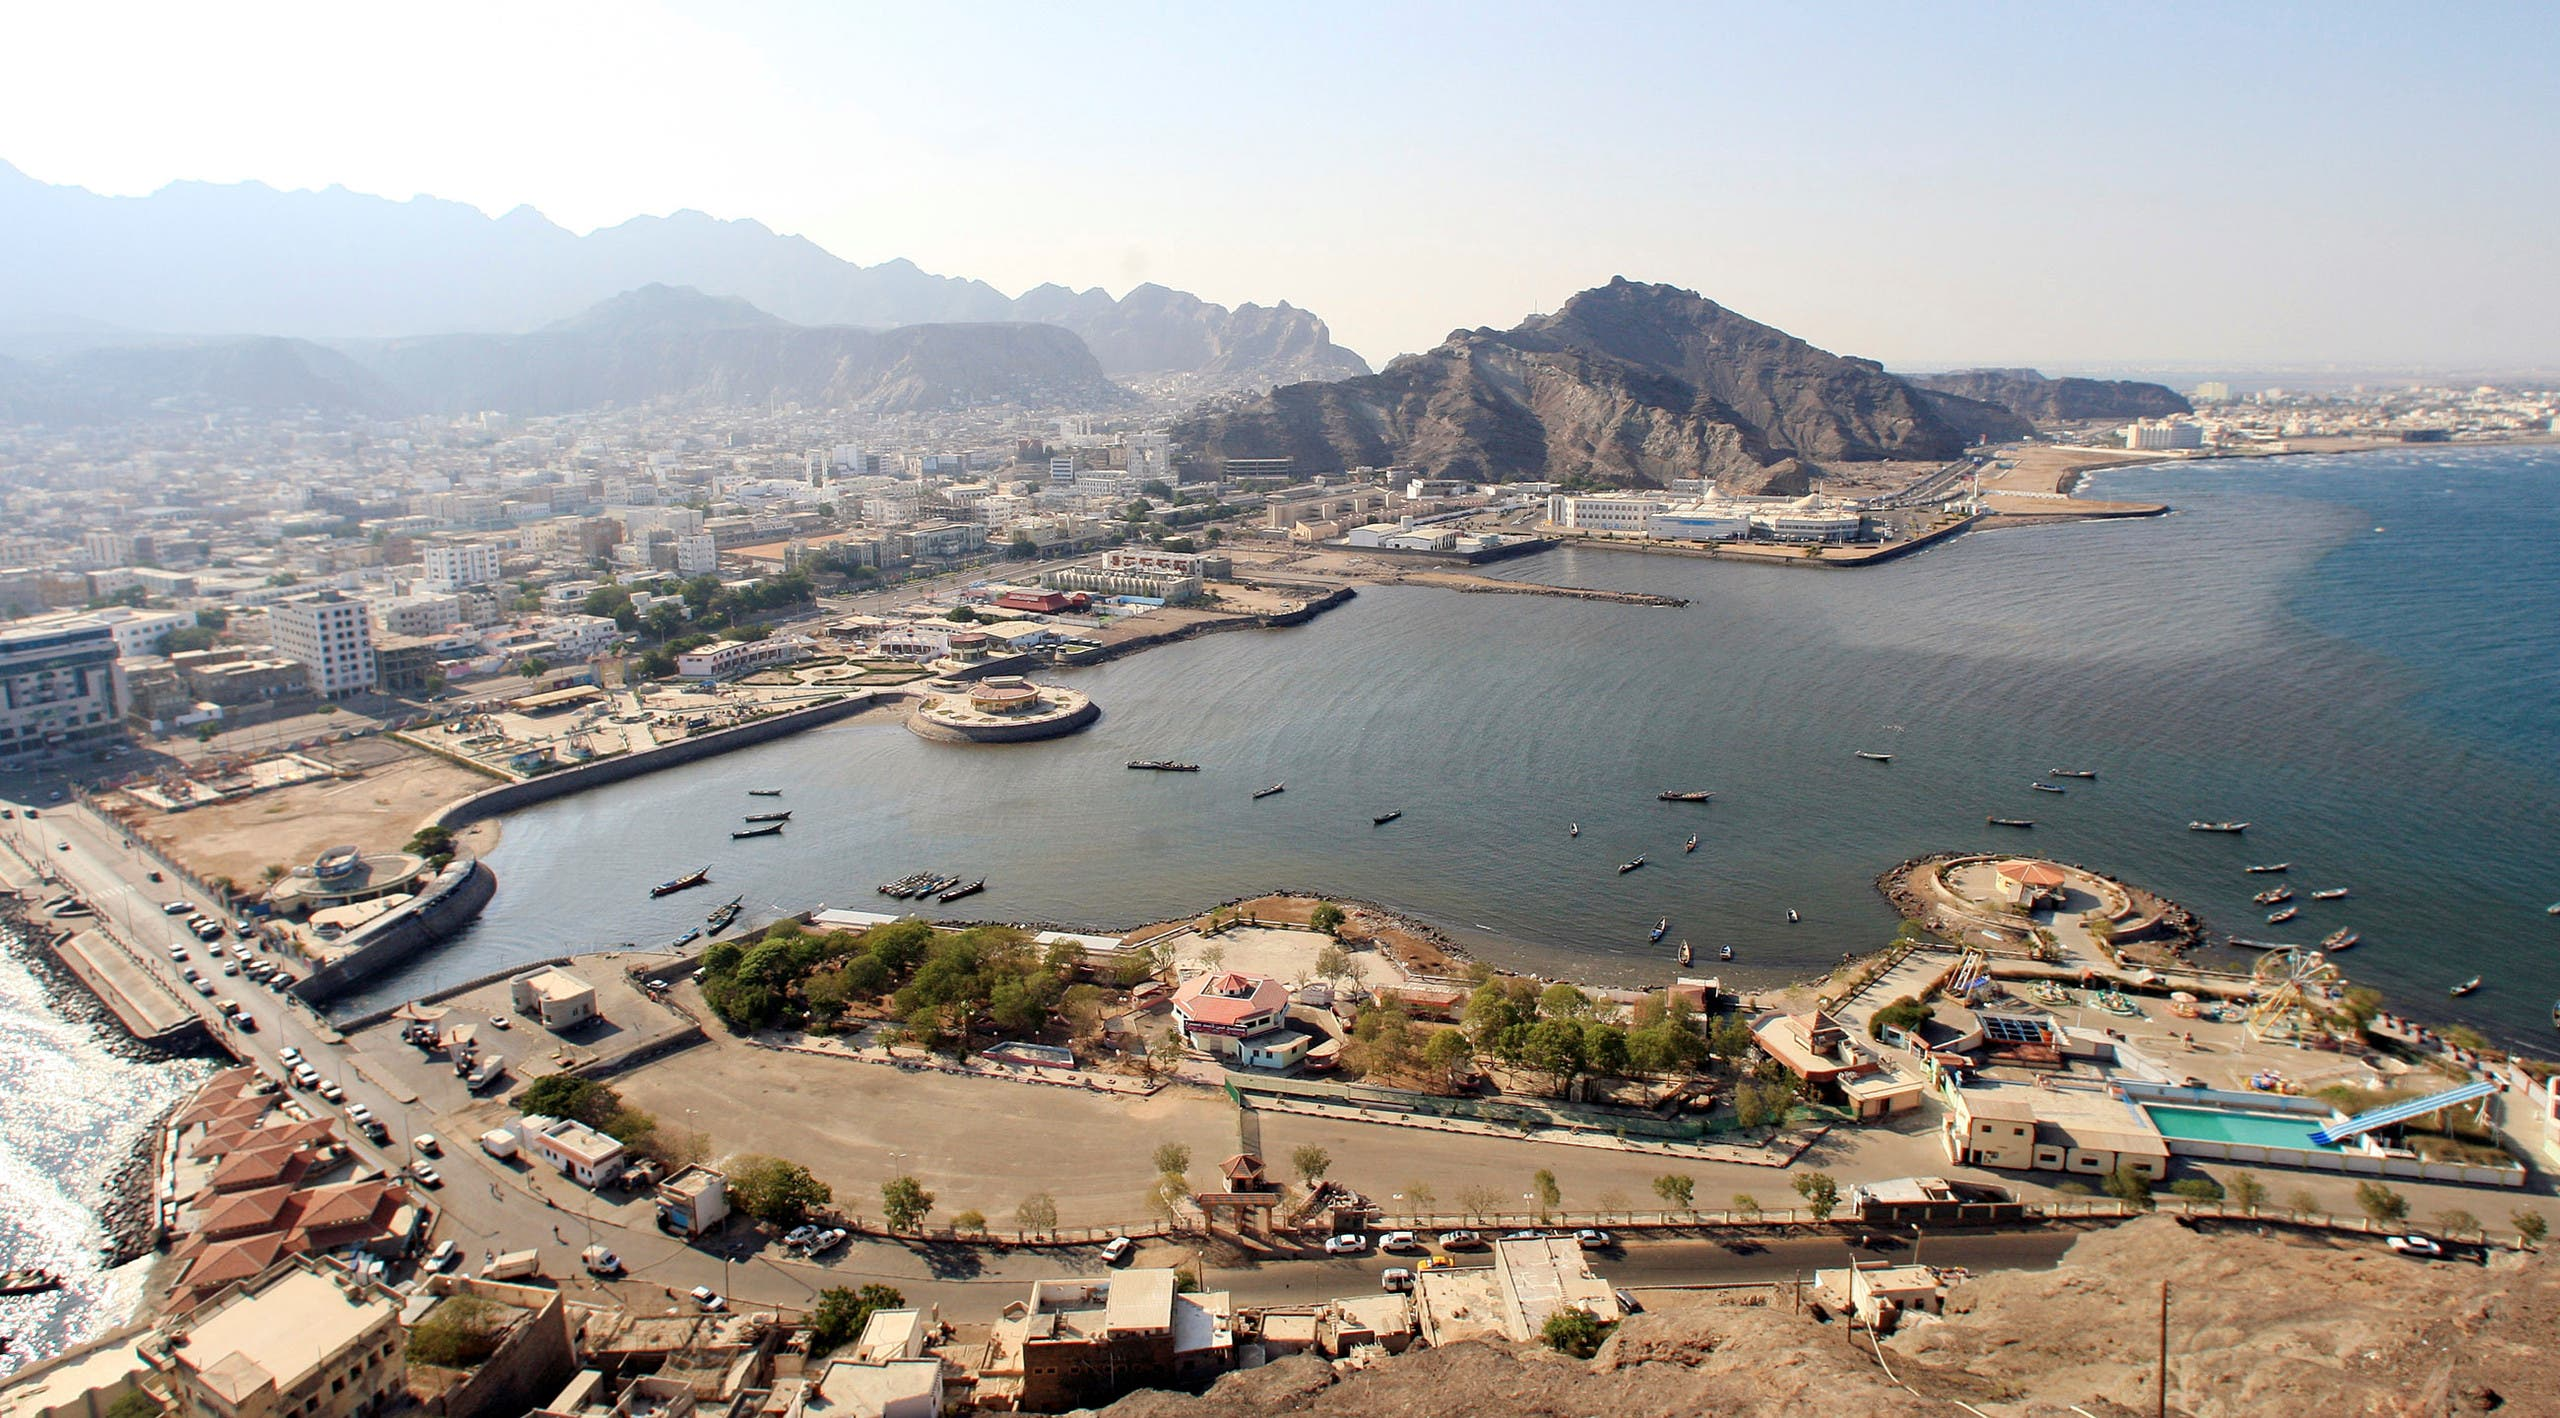 An aerial view shows Aden's City in southern Yemen, November 30, 2010. (Reuters)